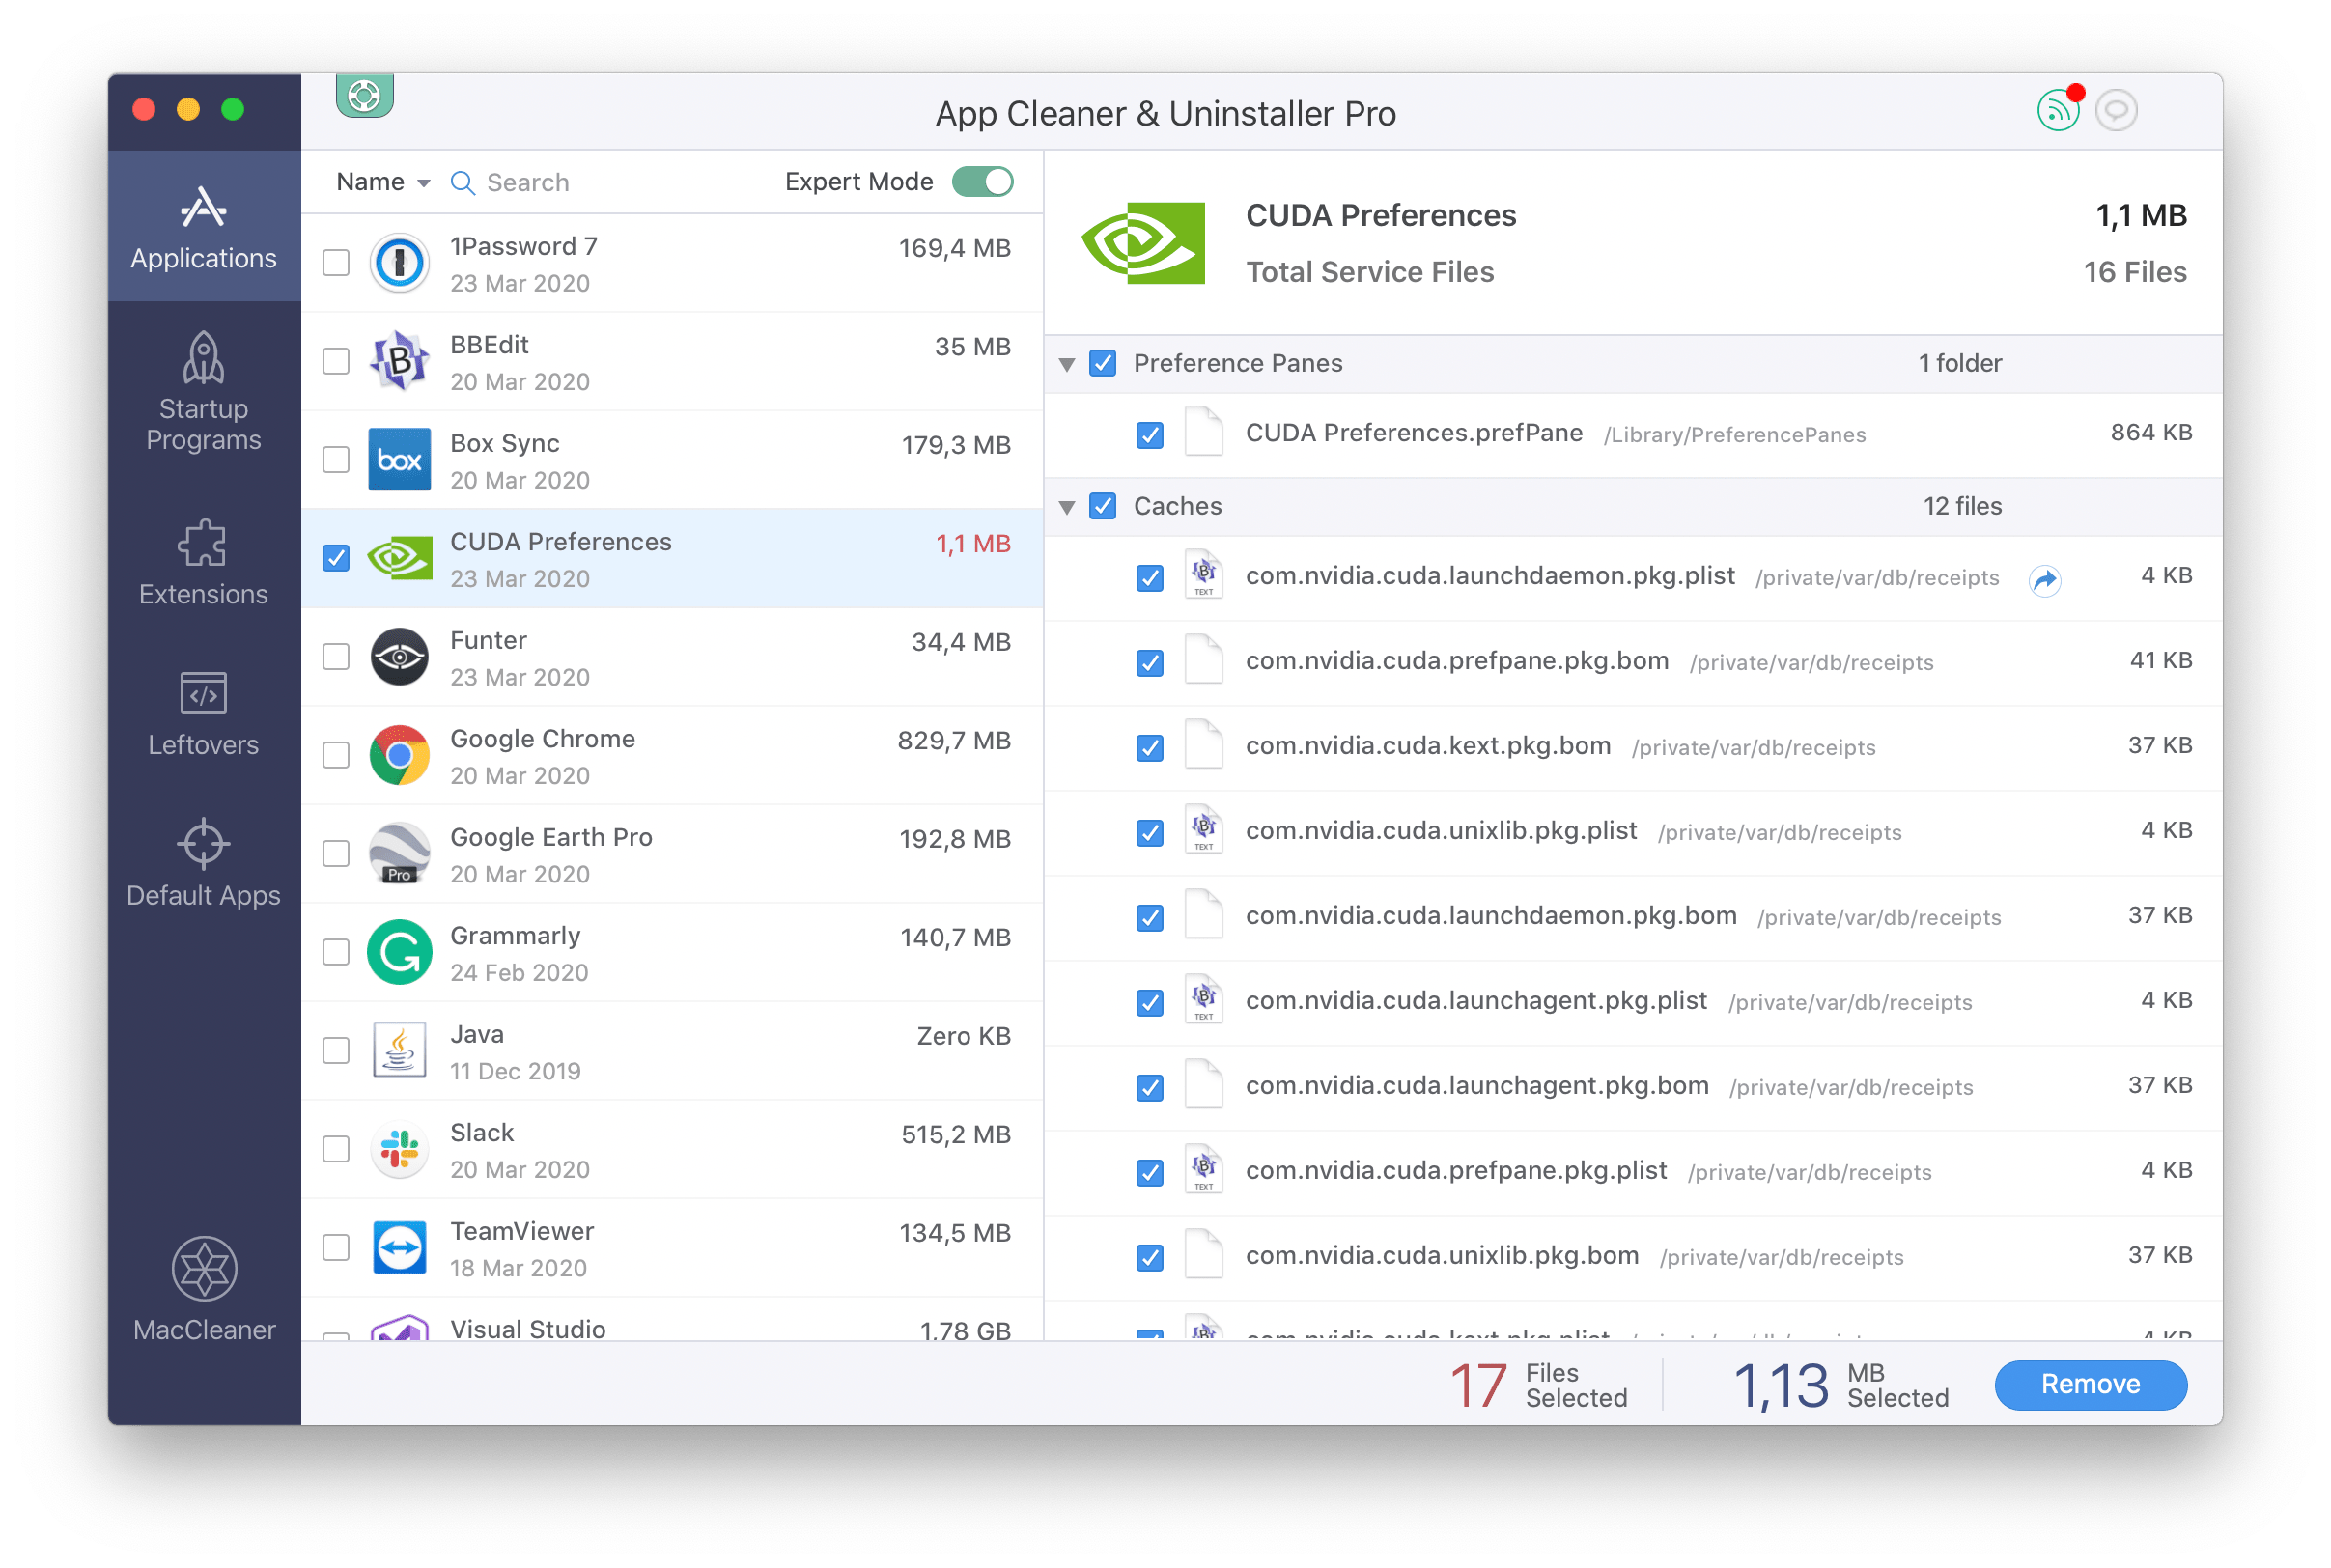 Removing CUDA Preferences with App Cleaner & Uninstaller